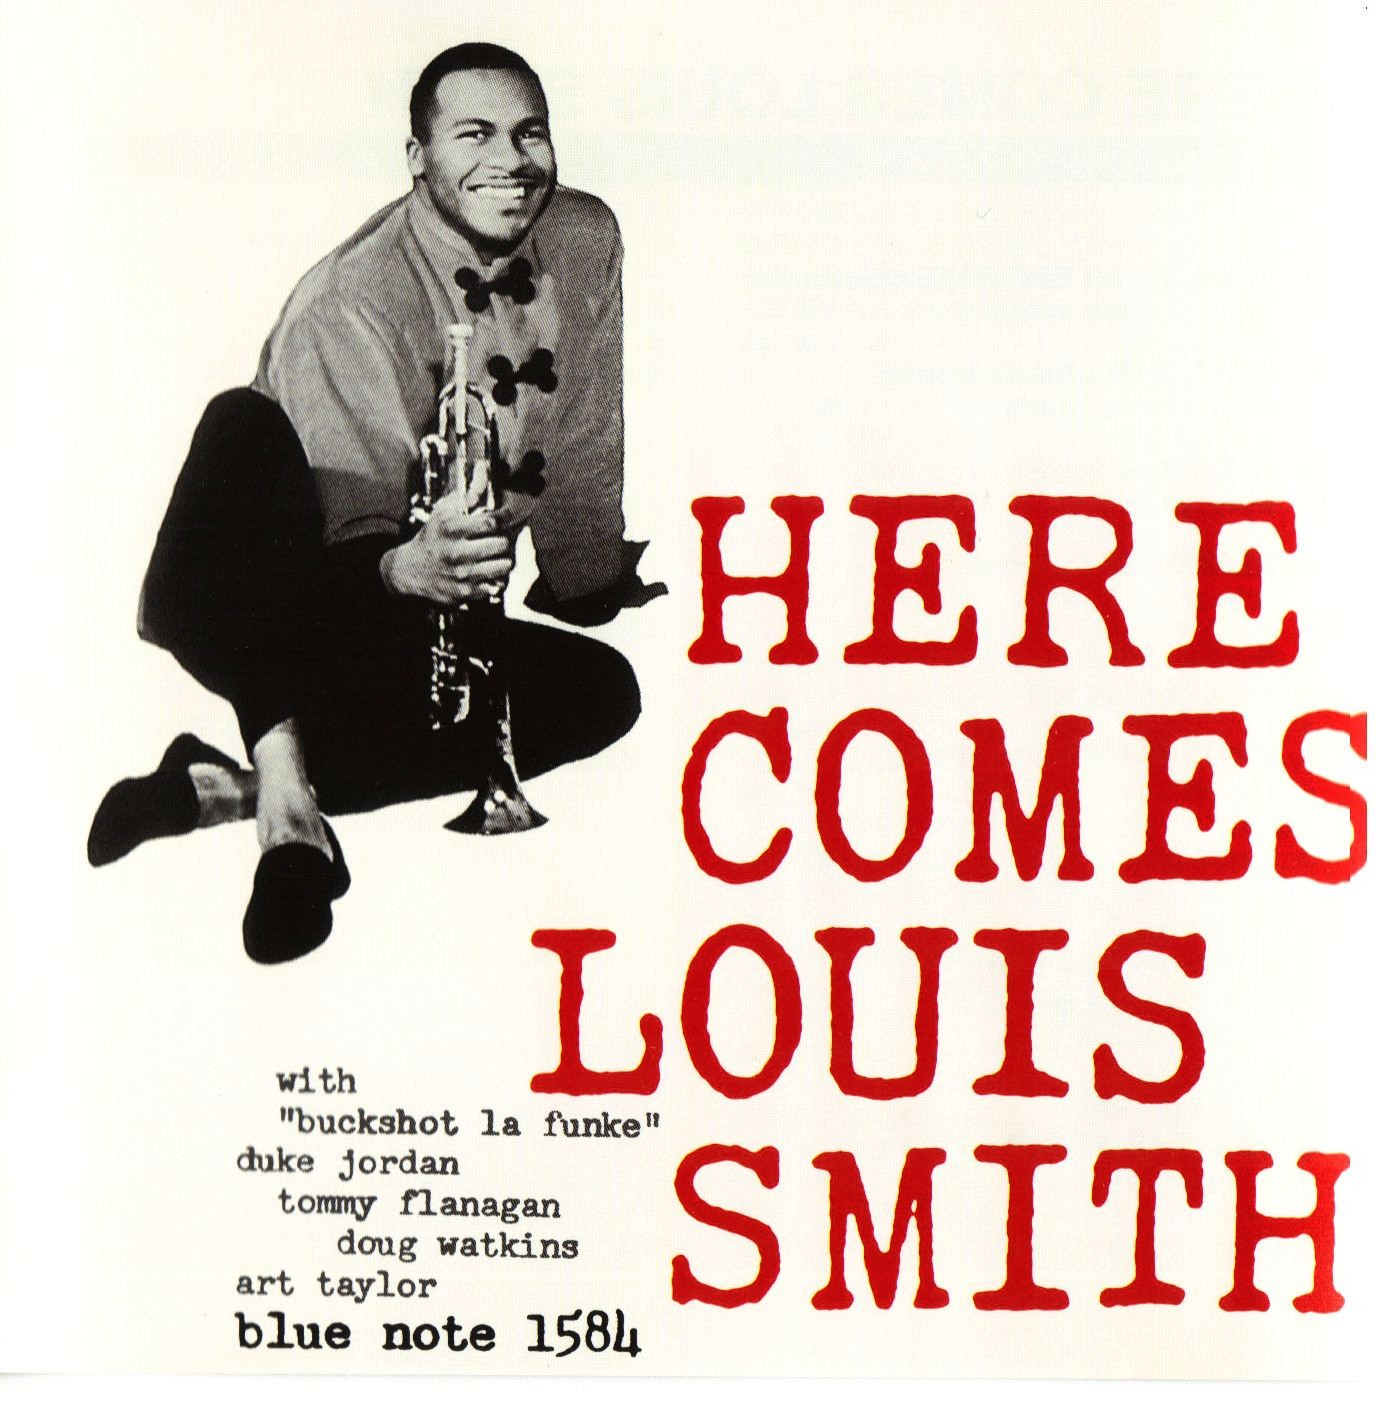 louis smith - here comes louis smith (sleeve art)